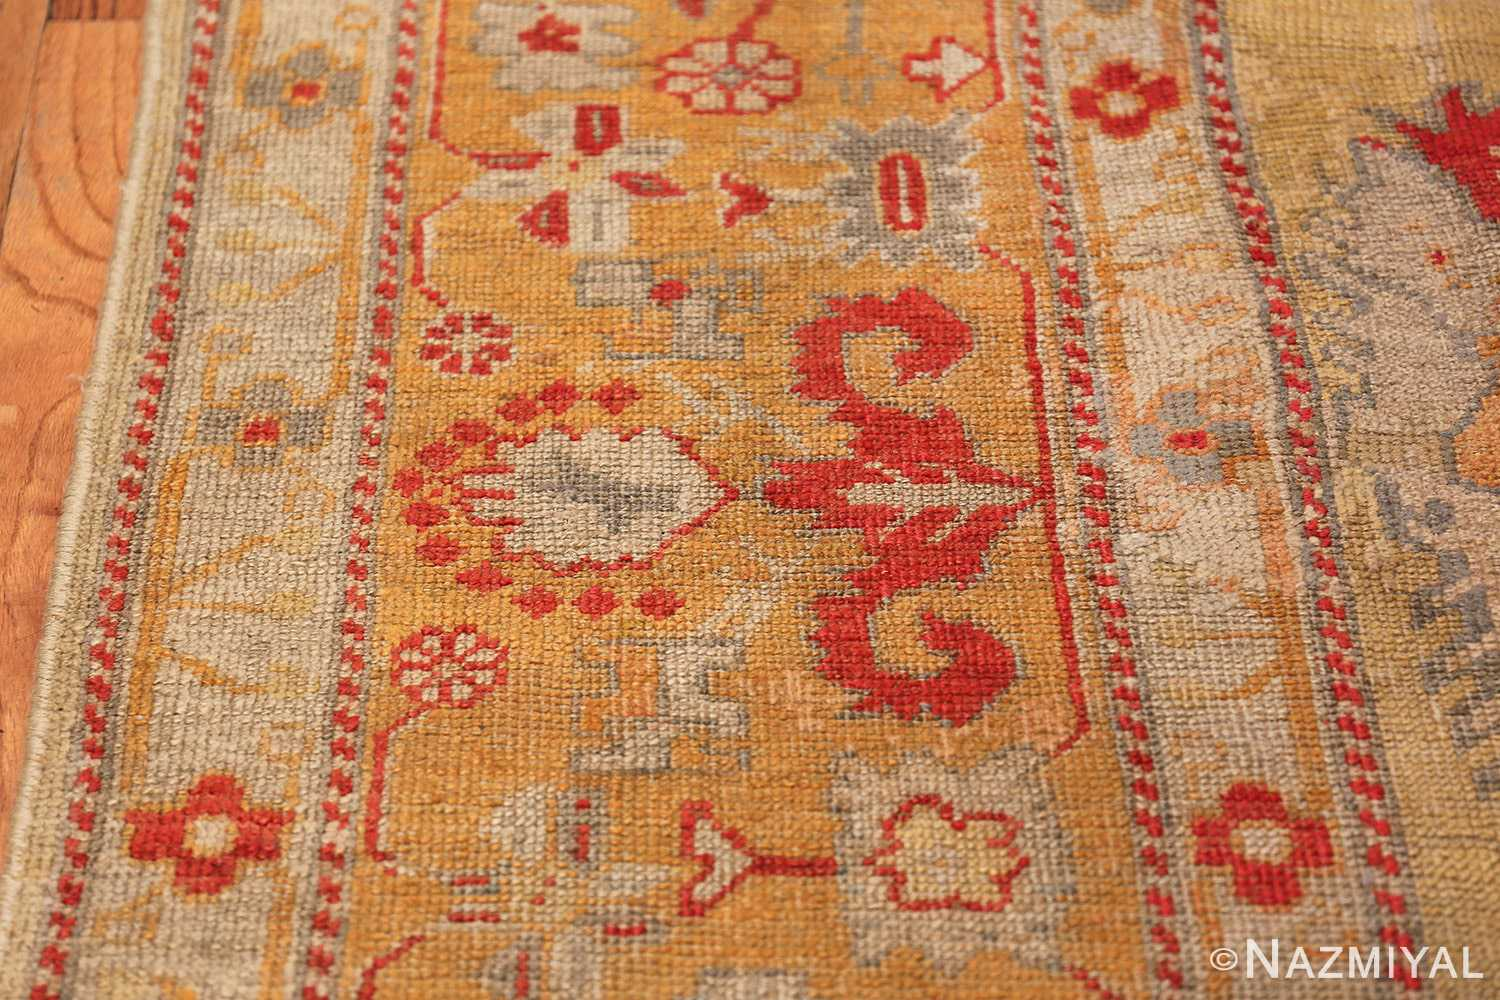 Tribal and Primitive Decorative Antique Turkish Oushak Rug 47260 Red Border Nazmiyal